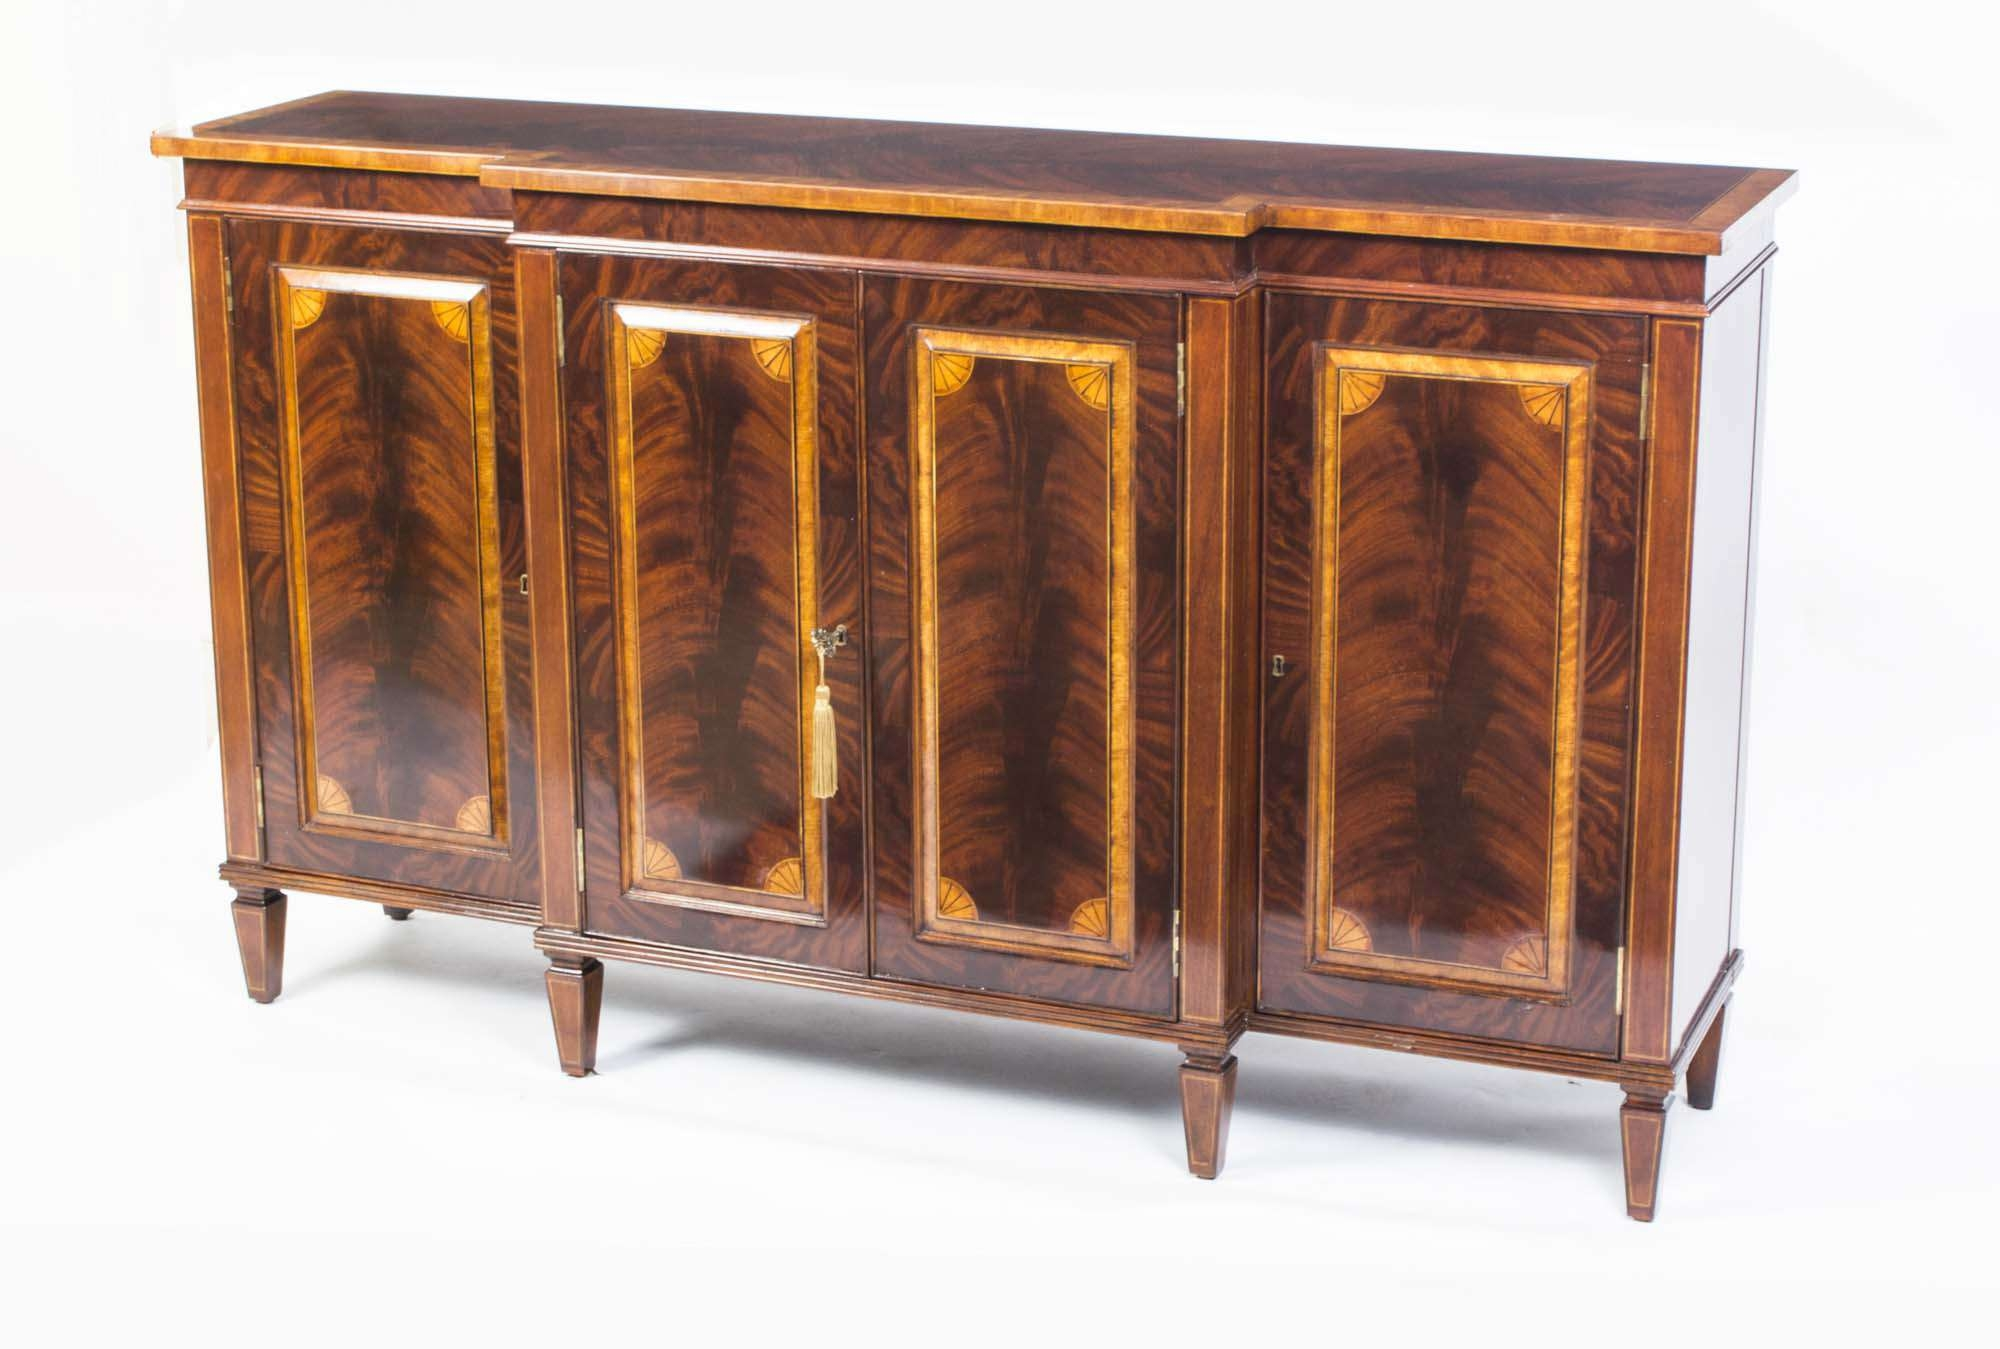 New Credenzas And Sideboards – Bjdgjy In Credenza Sideboards (View 7 of 20)